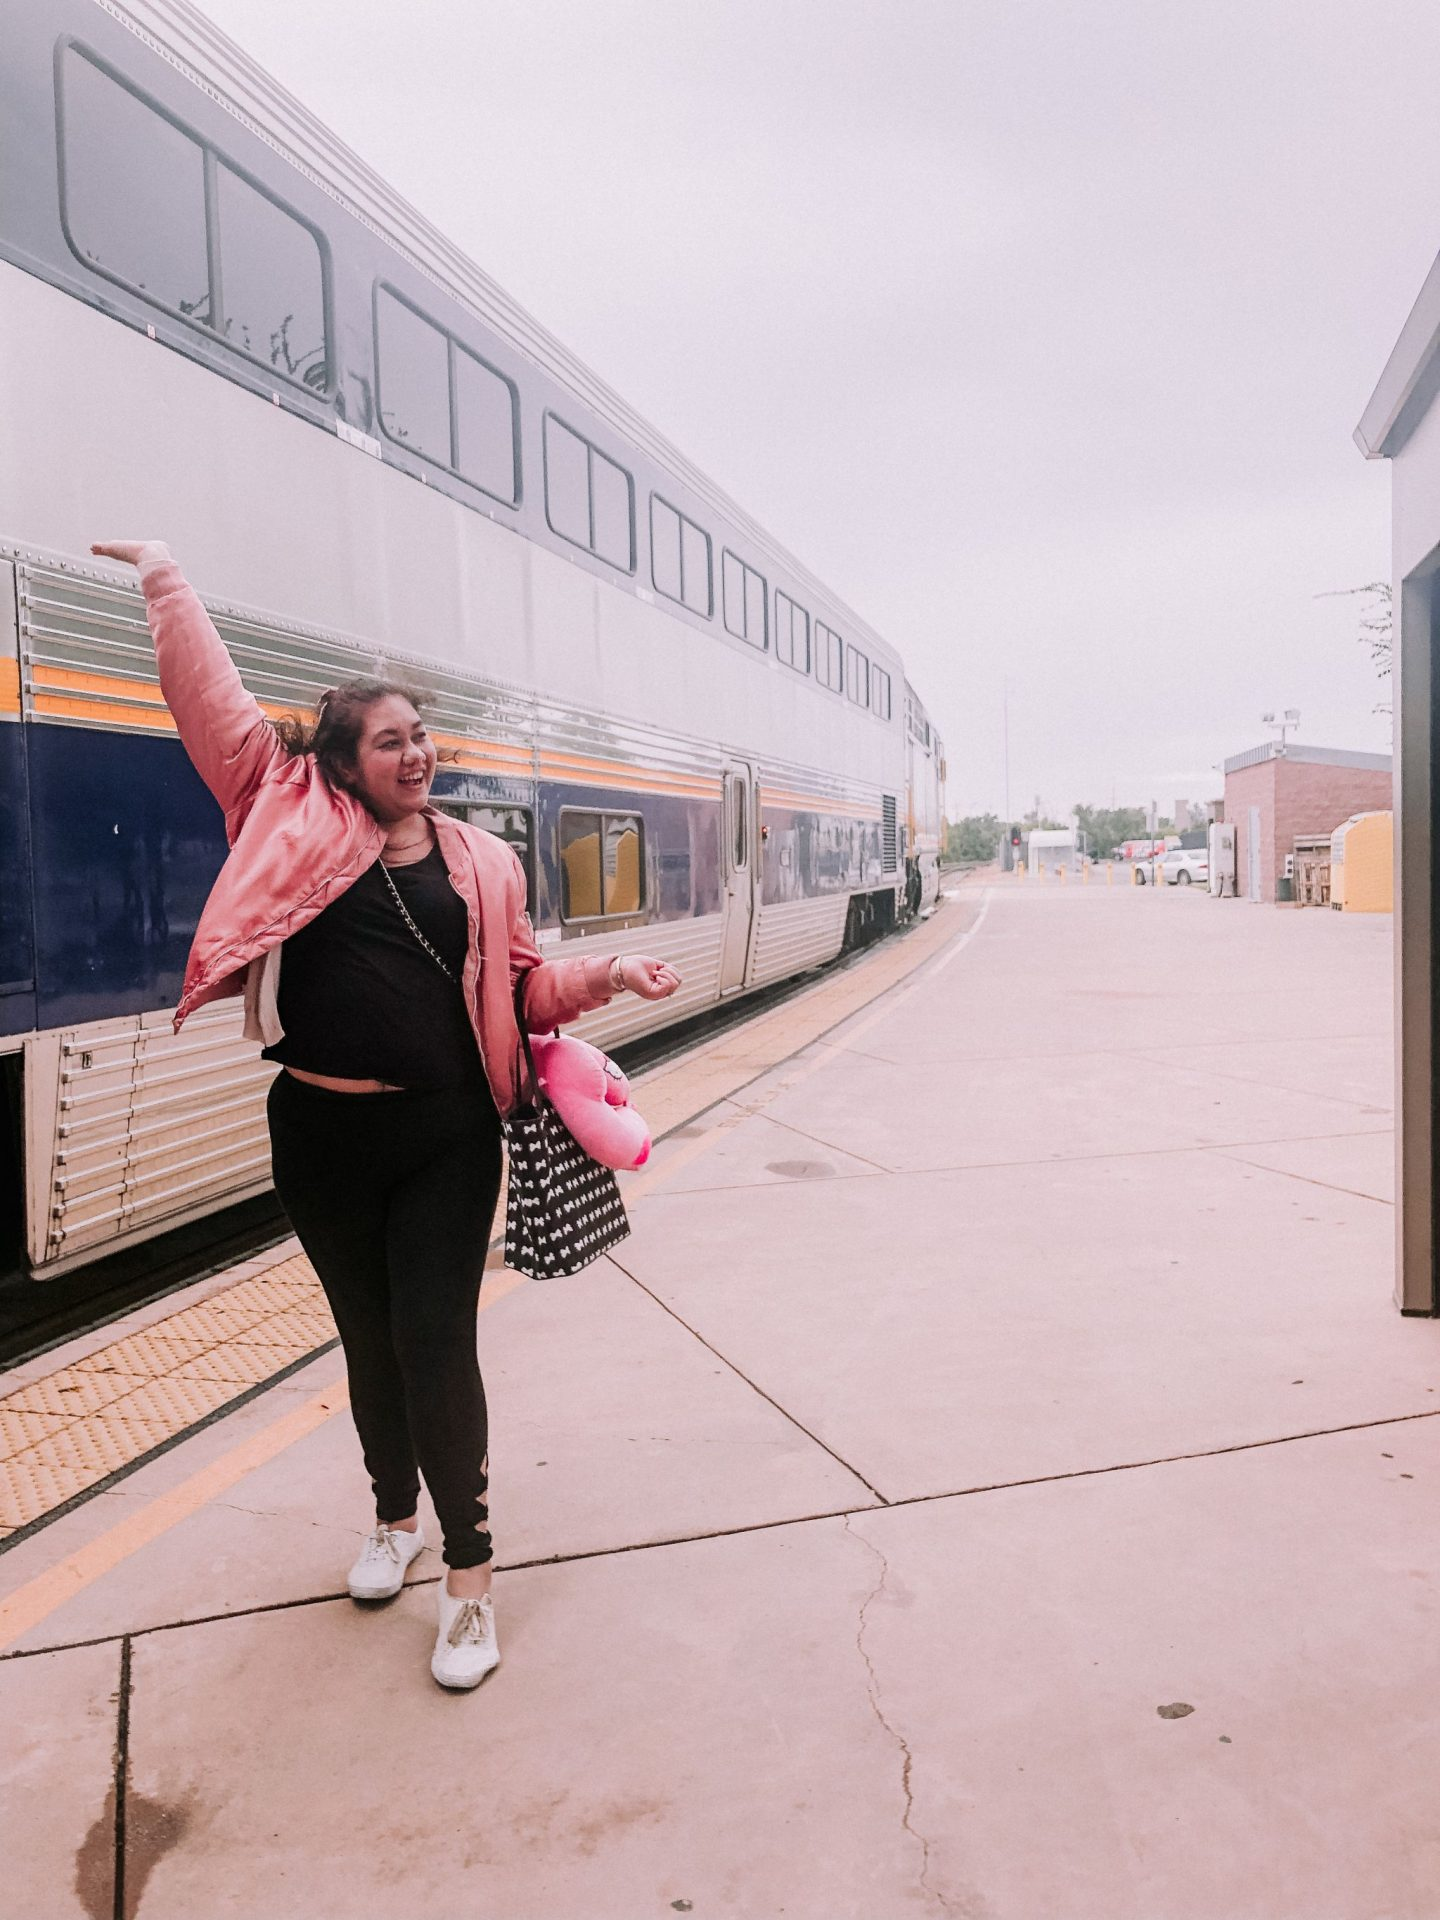 What I Wore To Travel On A Train